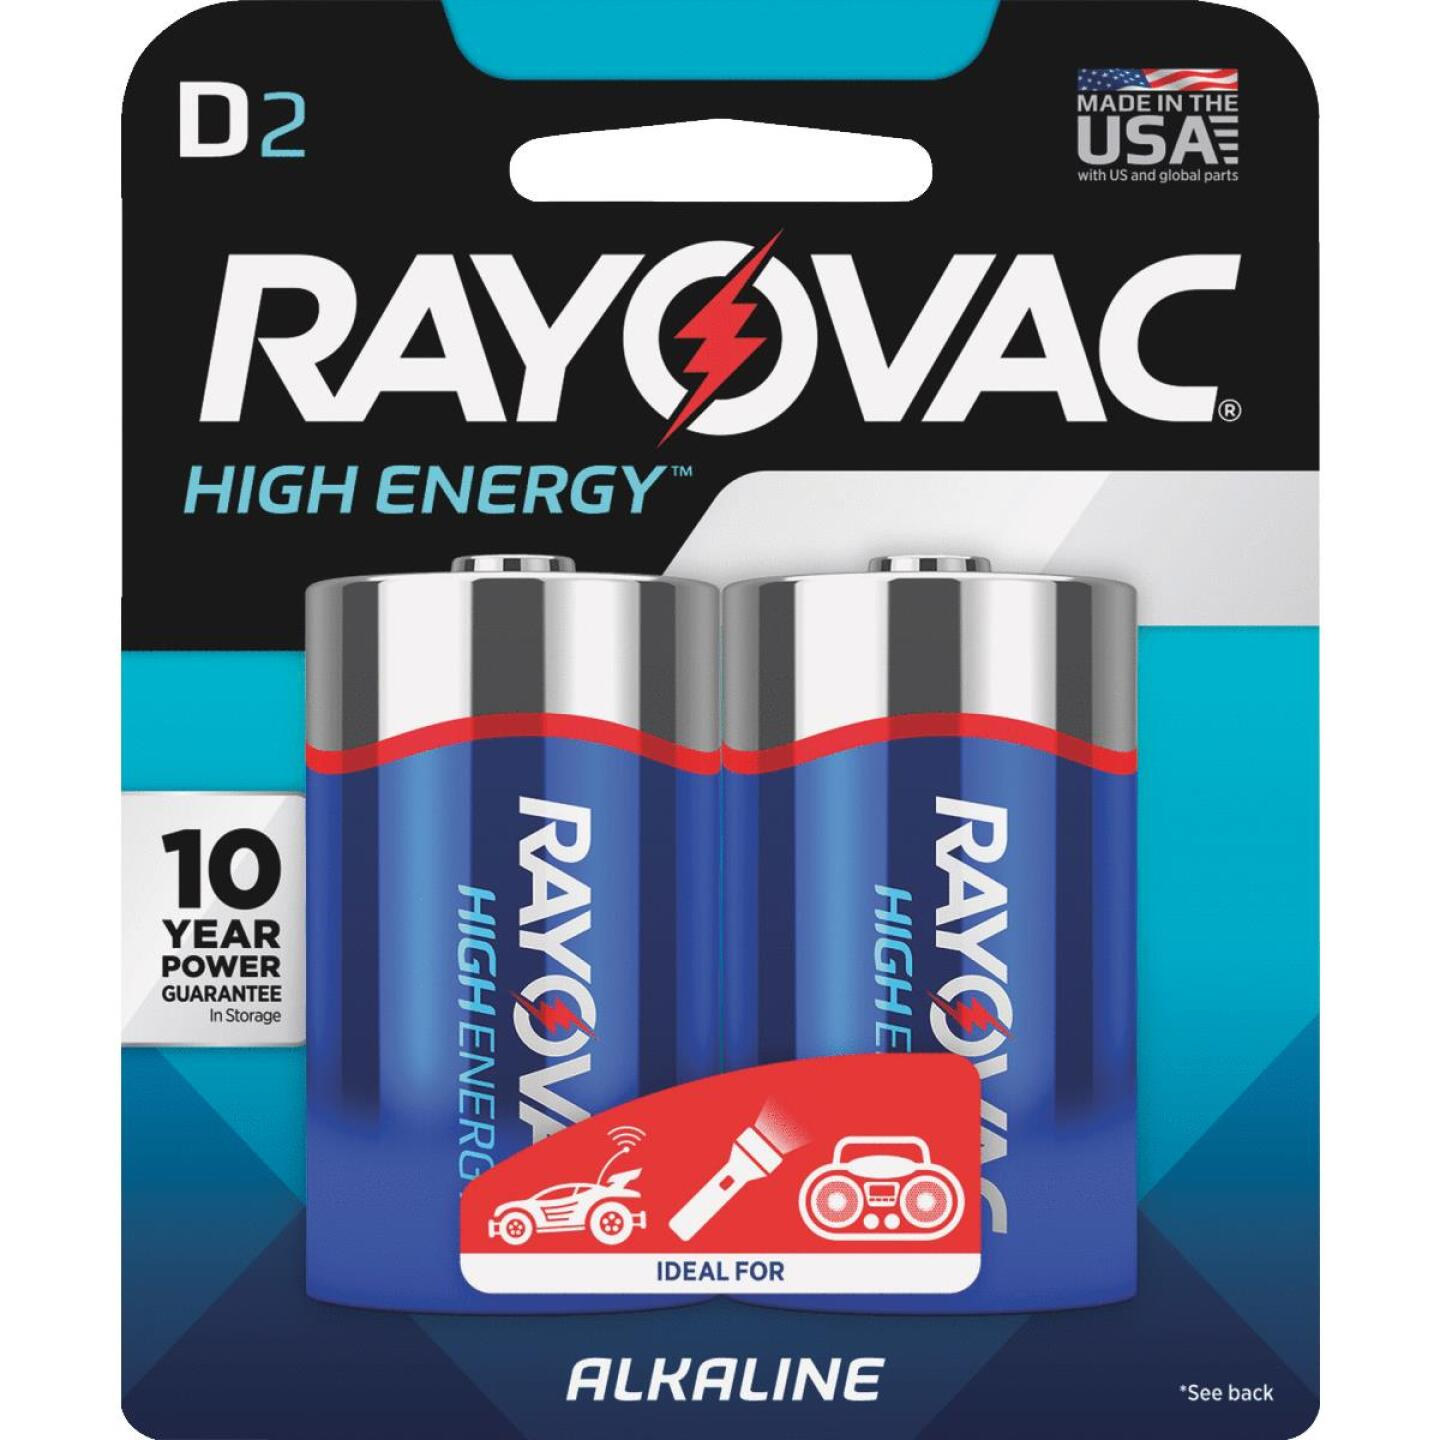 Rayovac High Energy D Alkaline Battery (2-Pack) Image 1